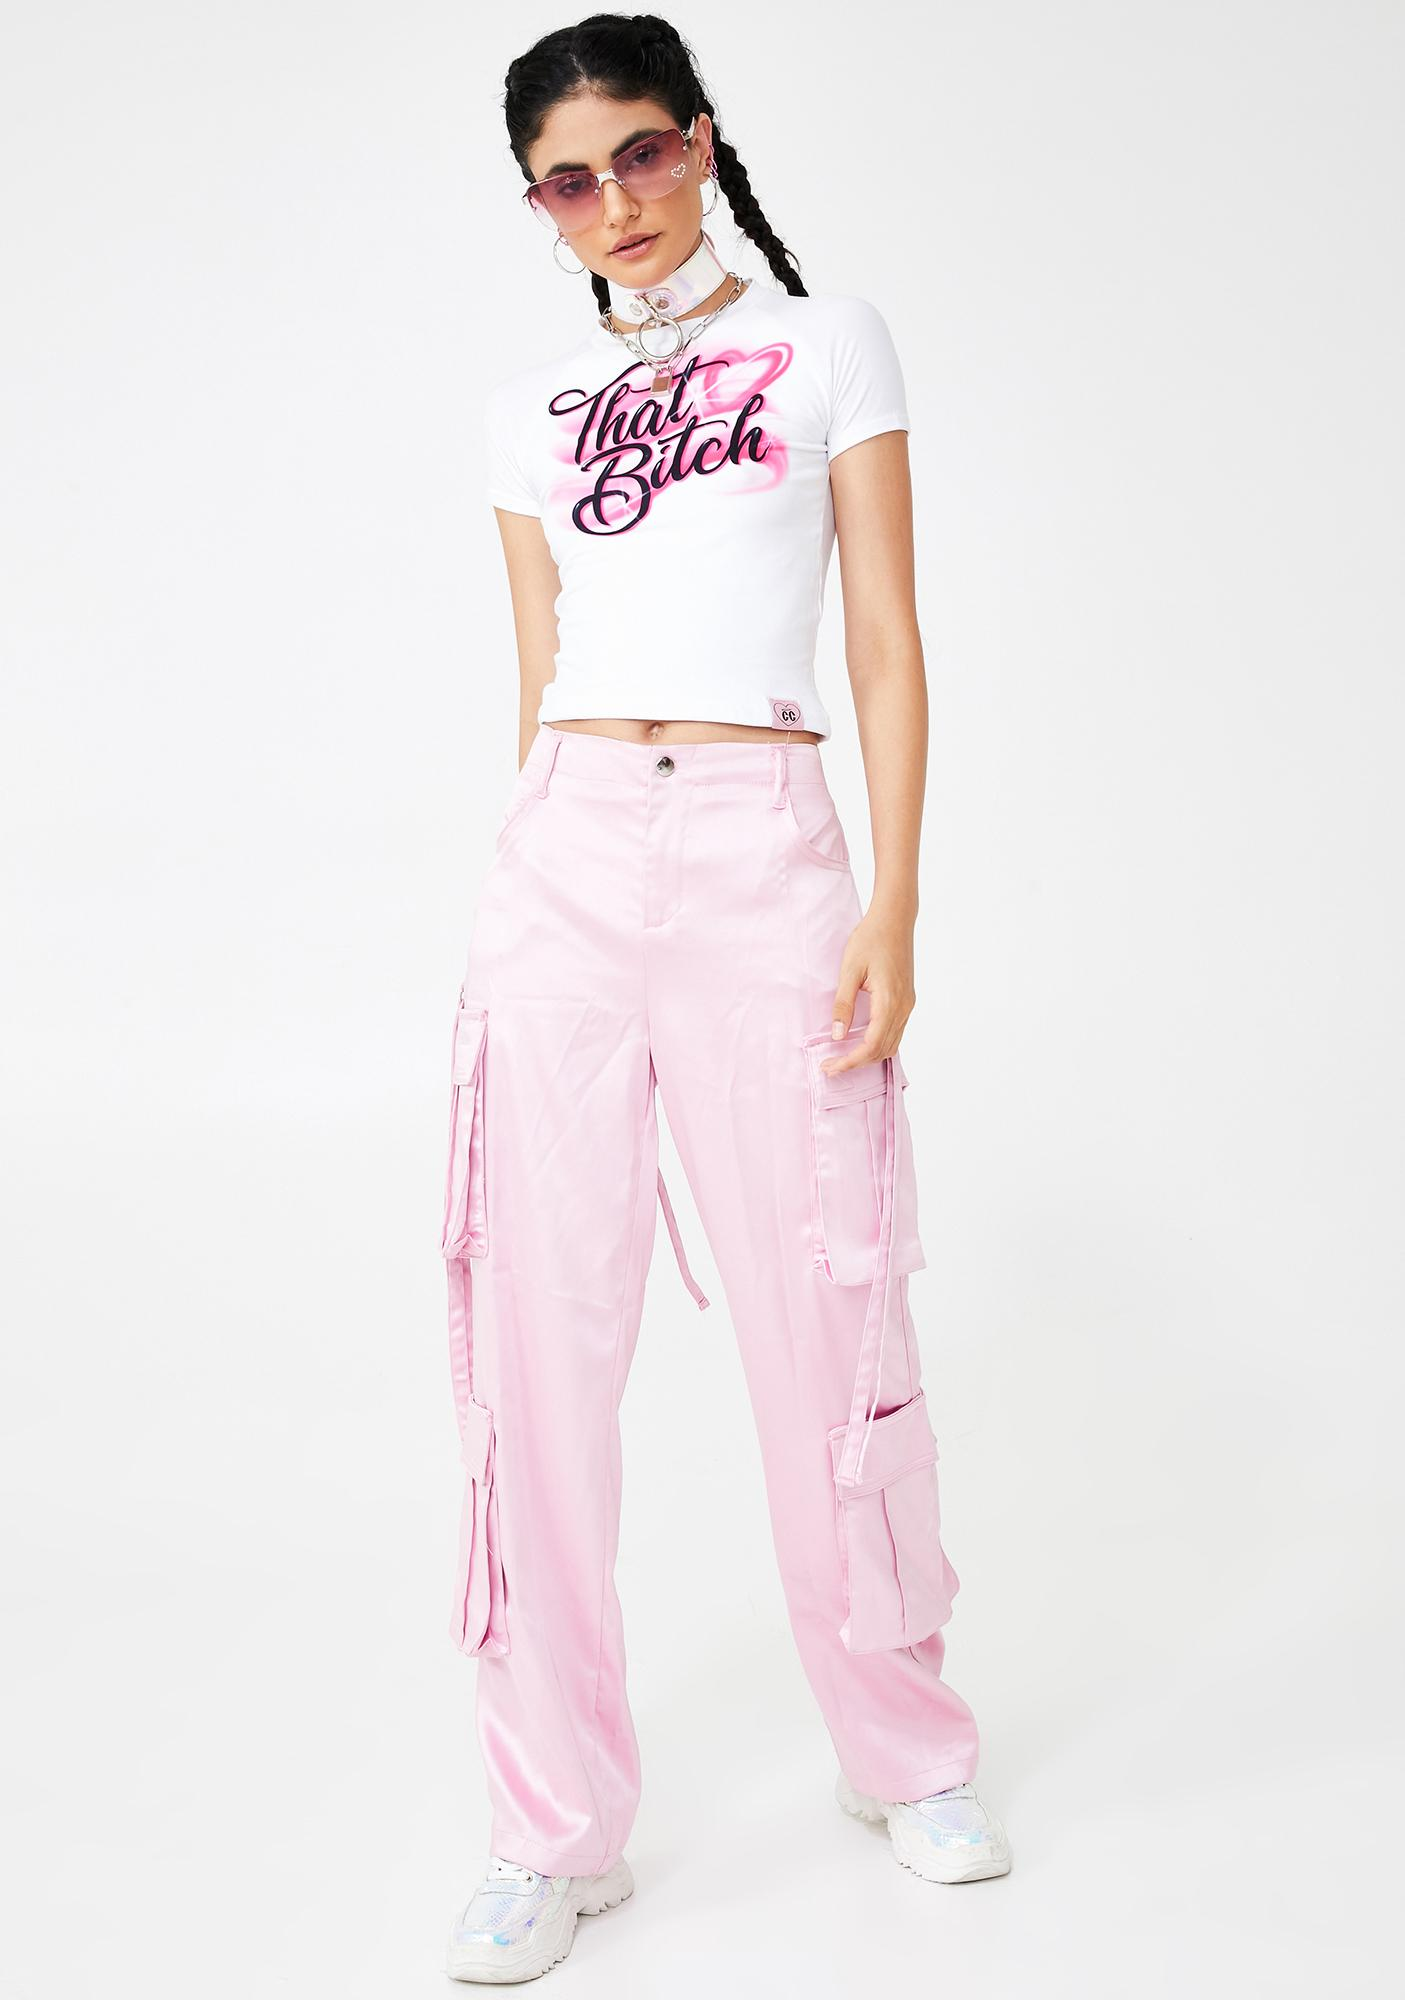 Cotton Candy Apparel That Bitch Baby Tee